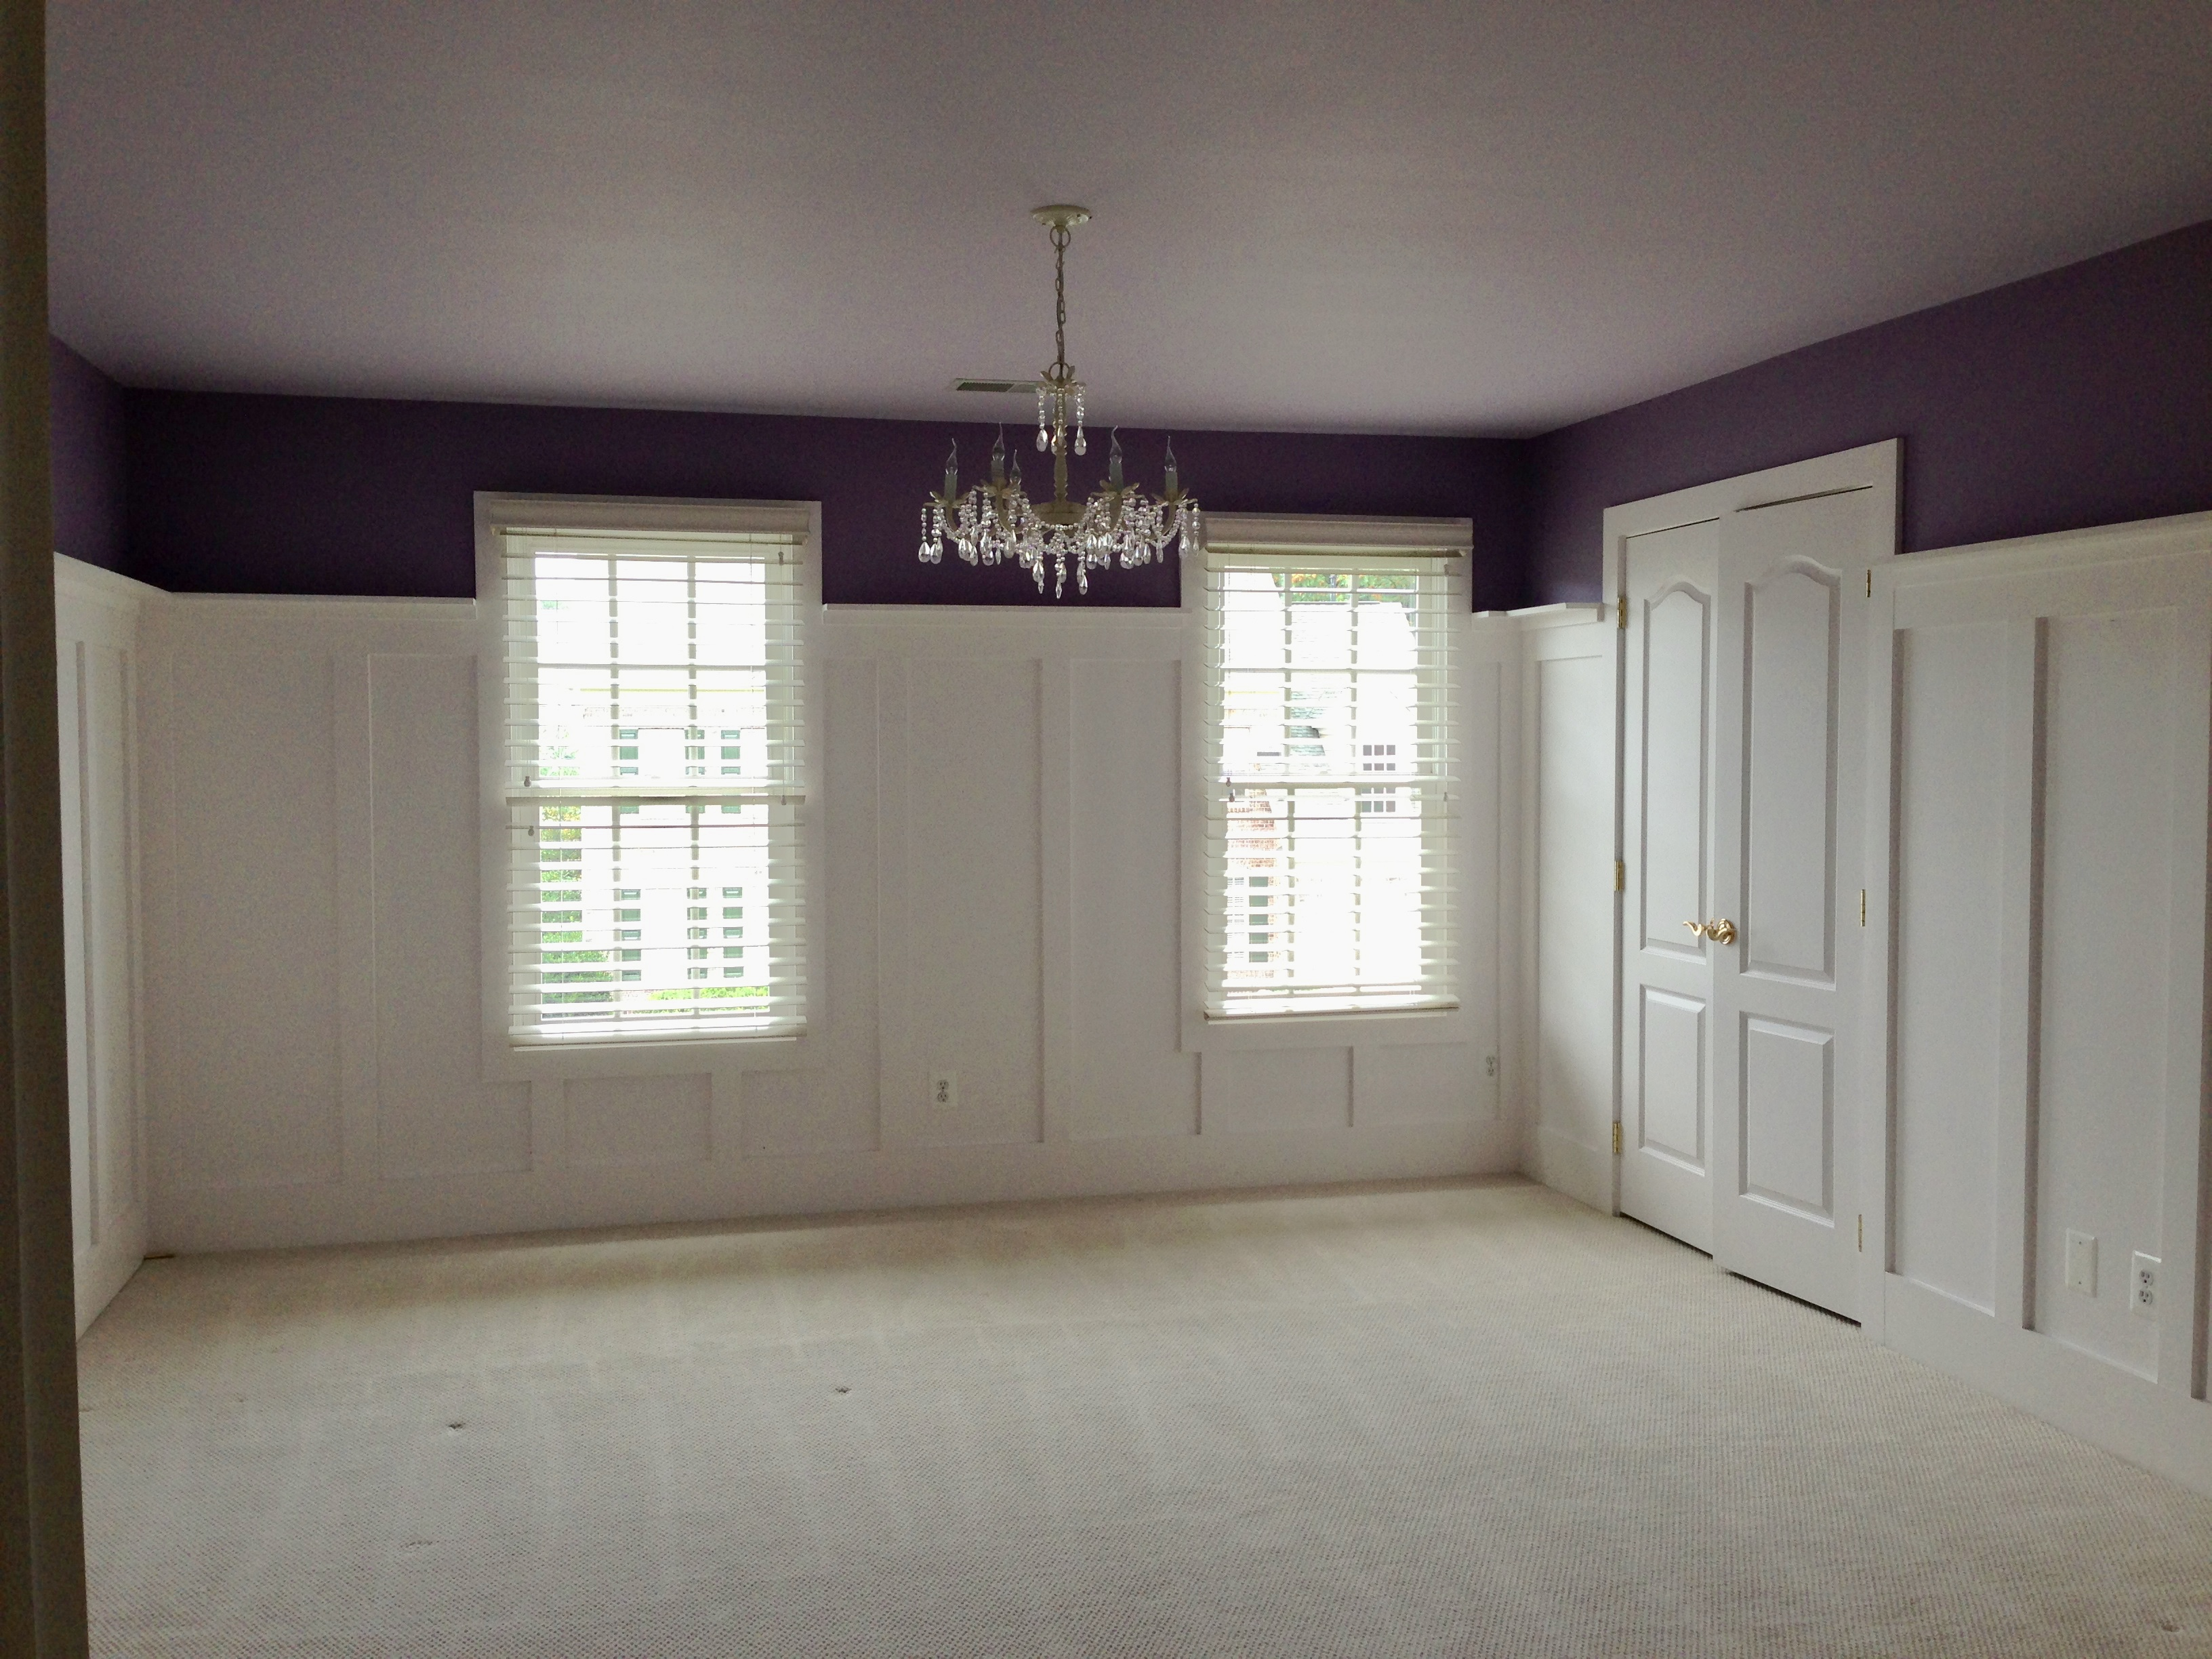 Create That Farmhouse Feel With Wainscoting Board And Batten Style